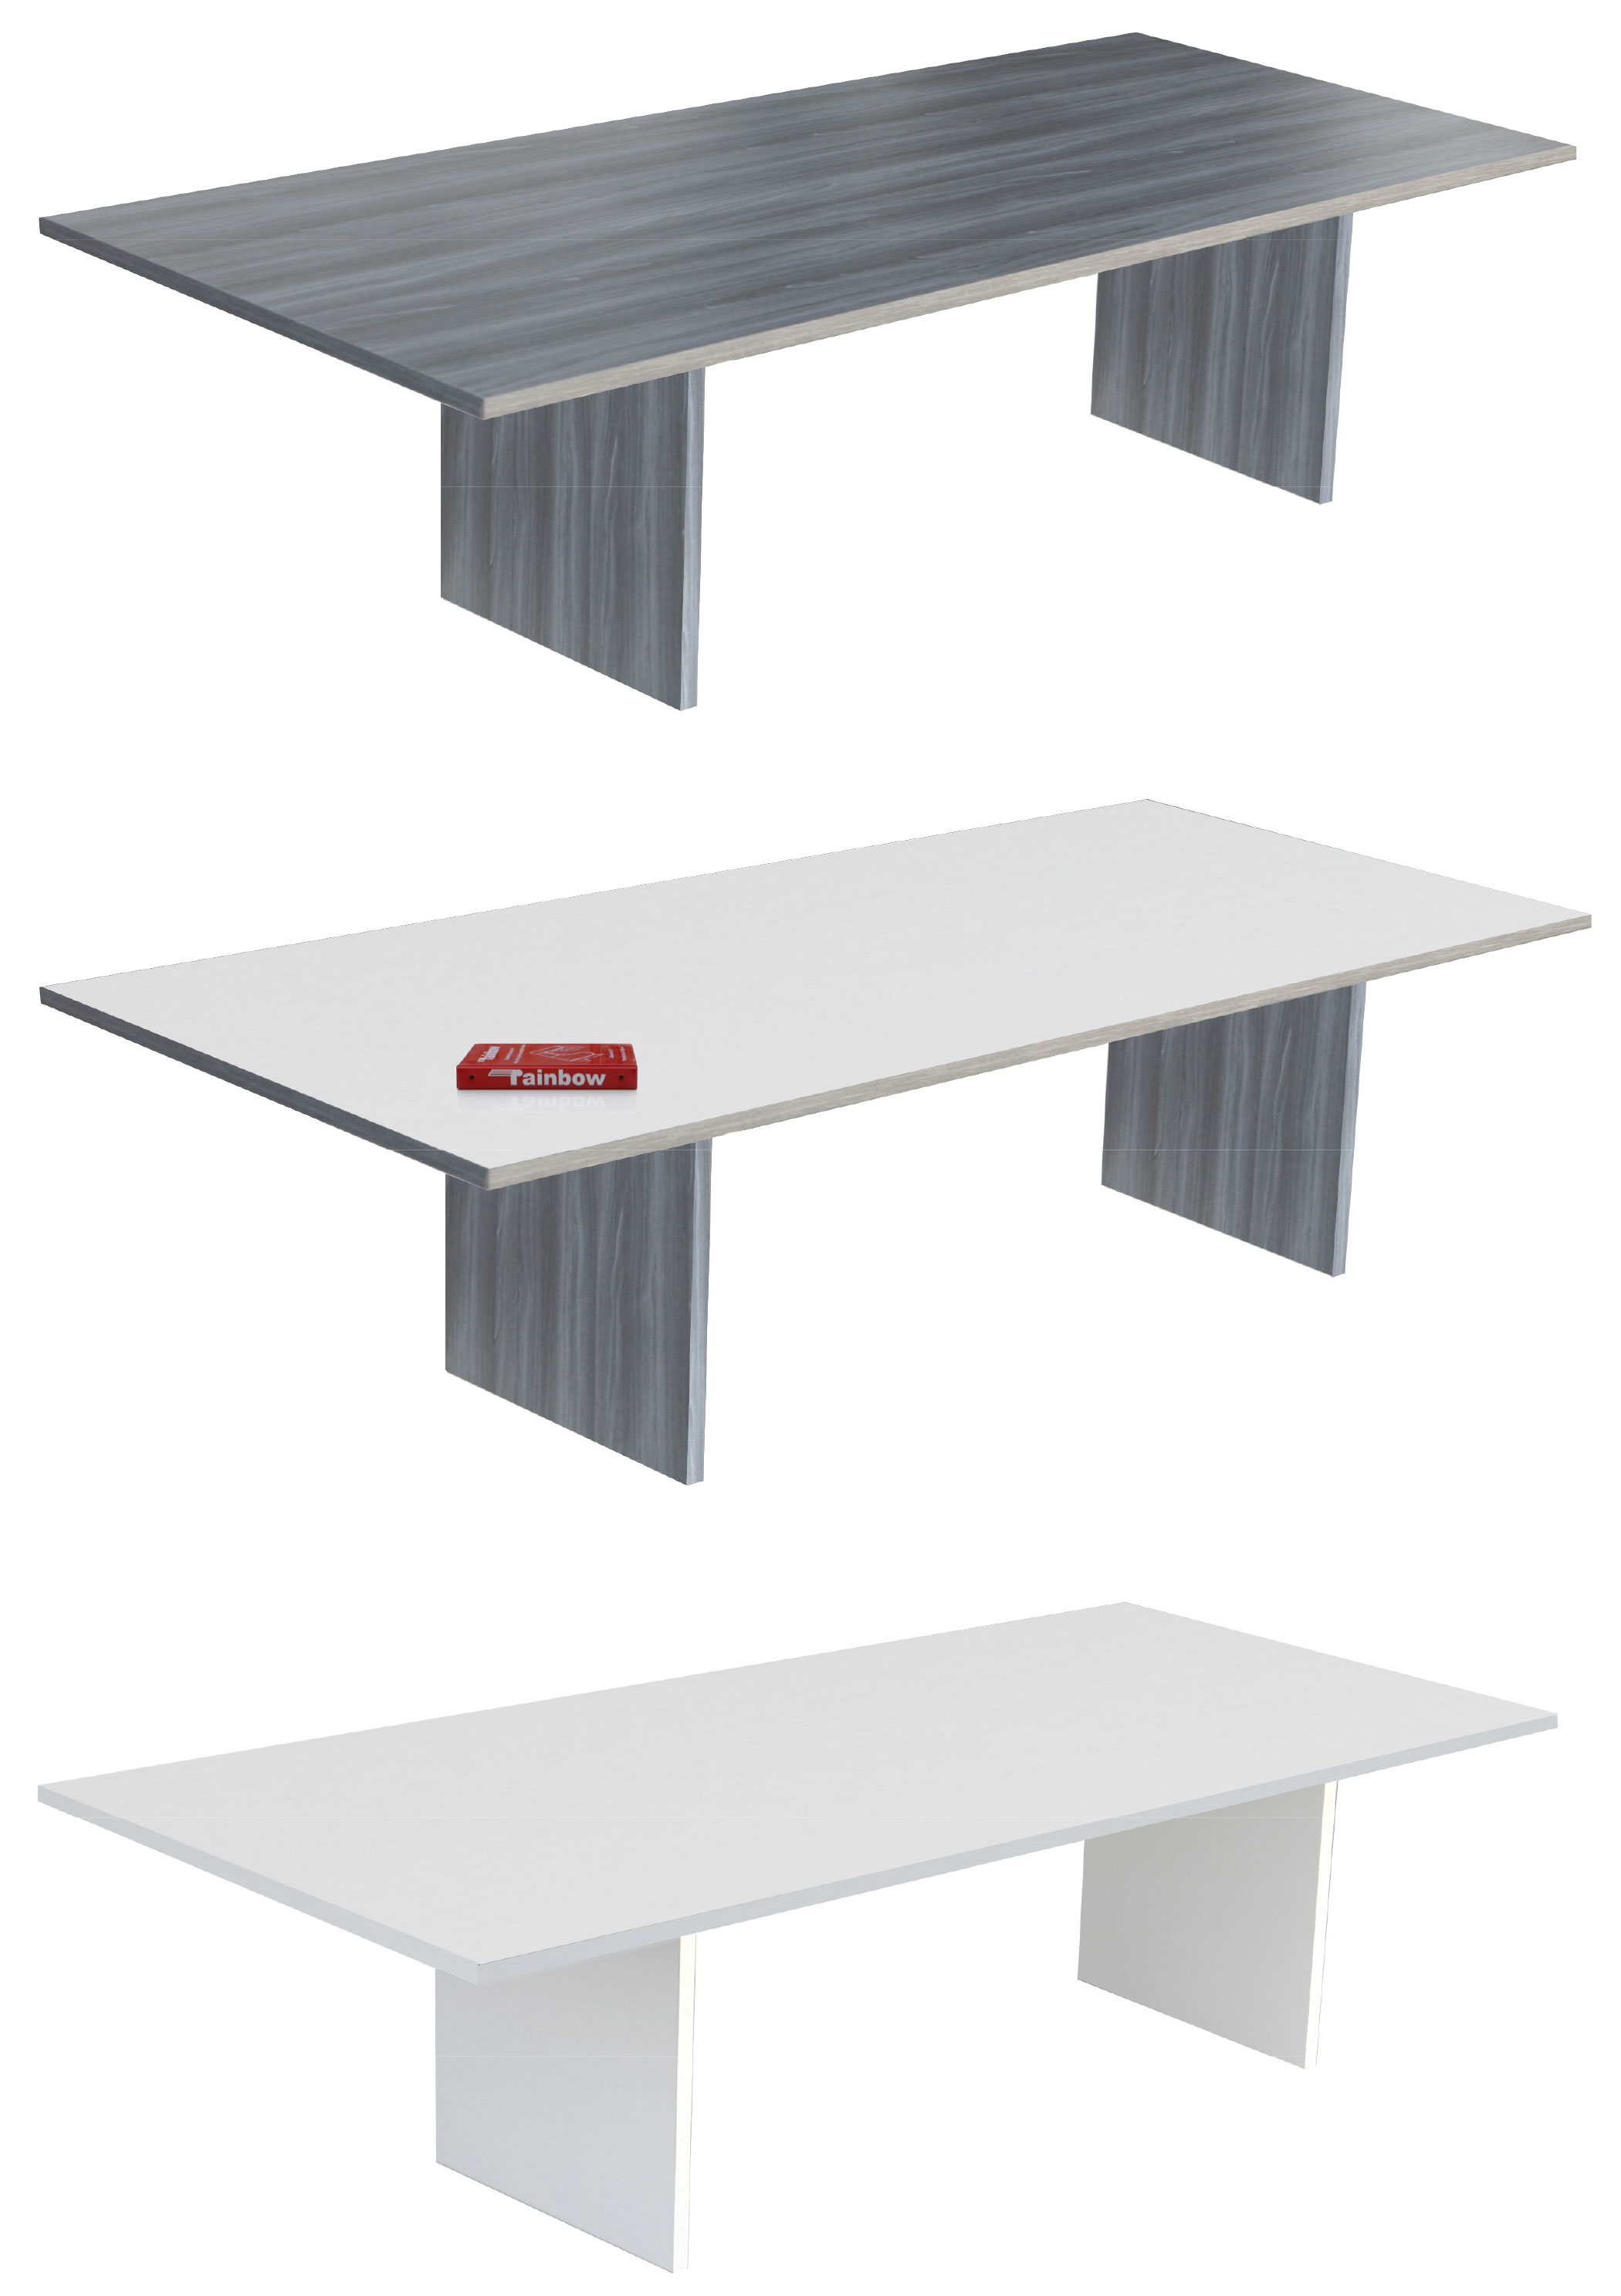 ARKO BKM Series conference tables - 3 surface options